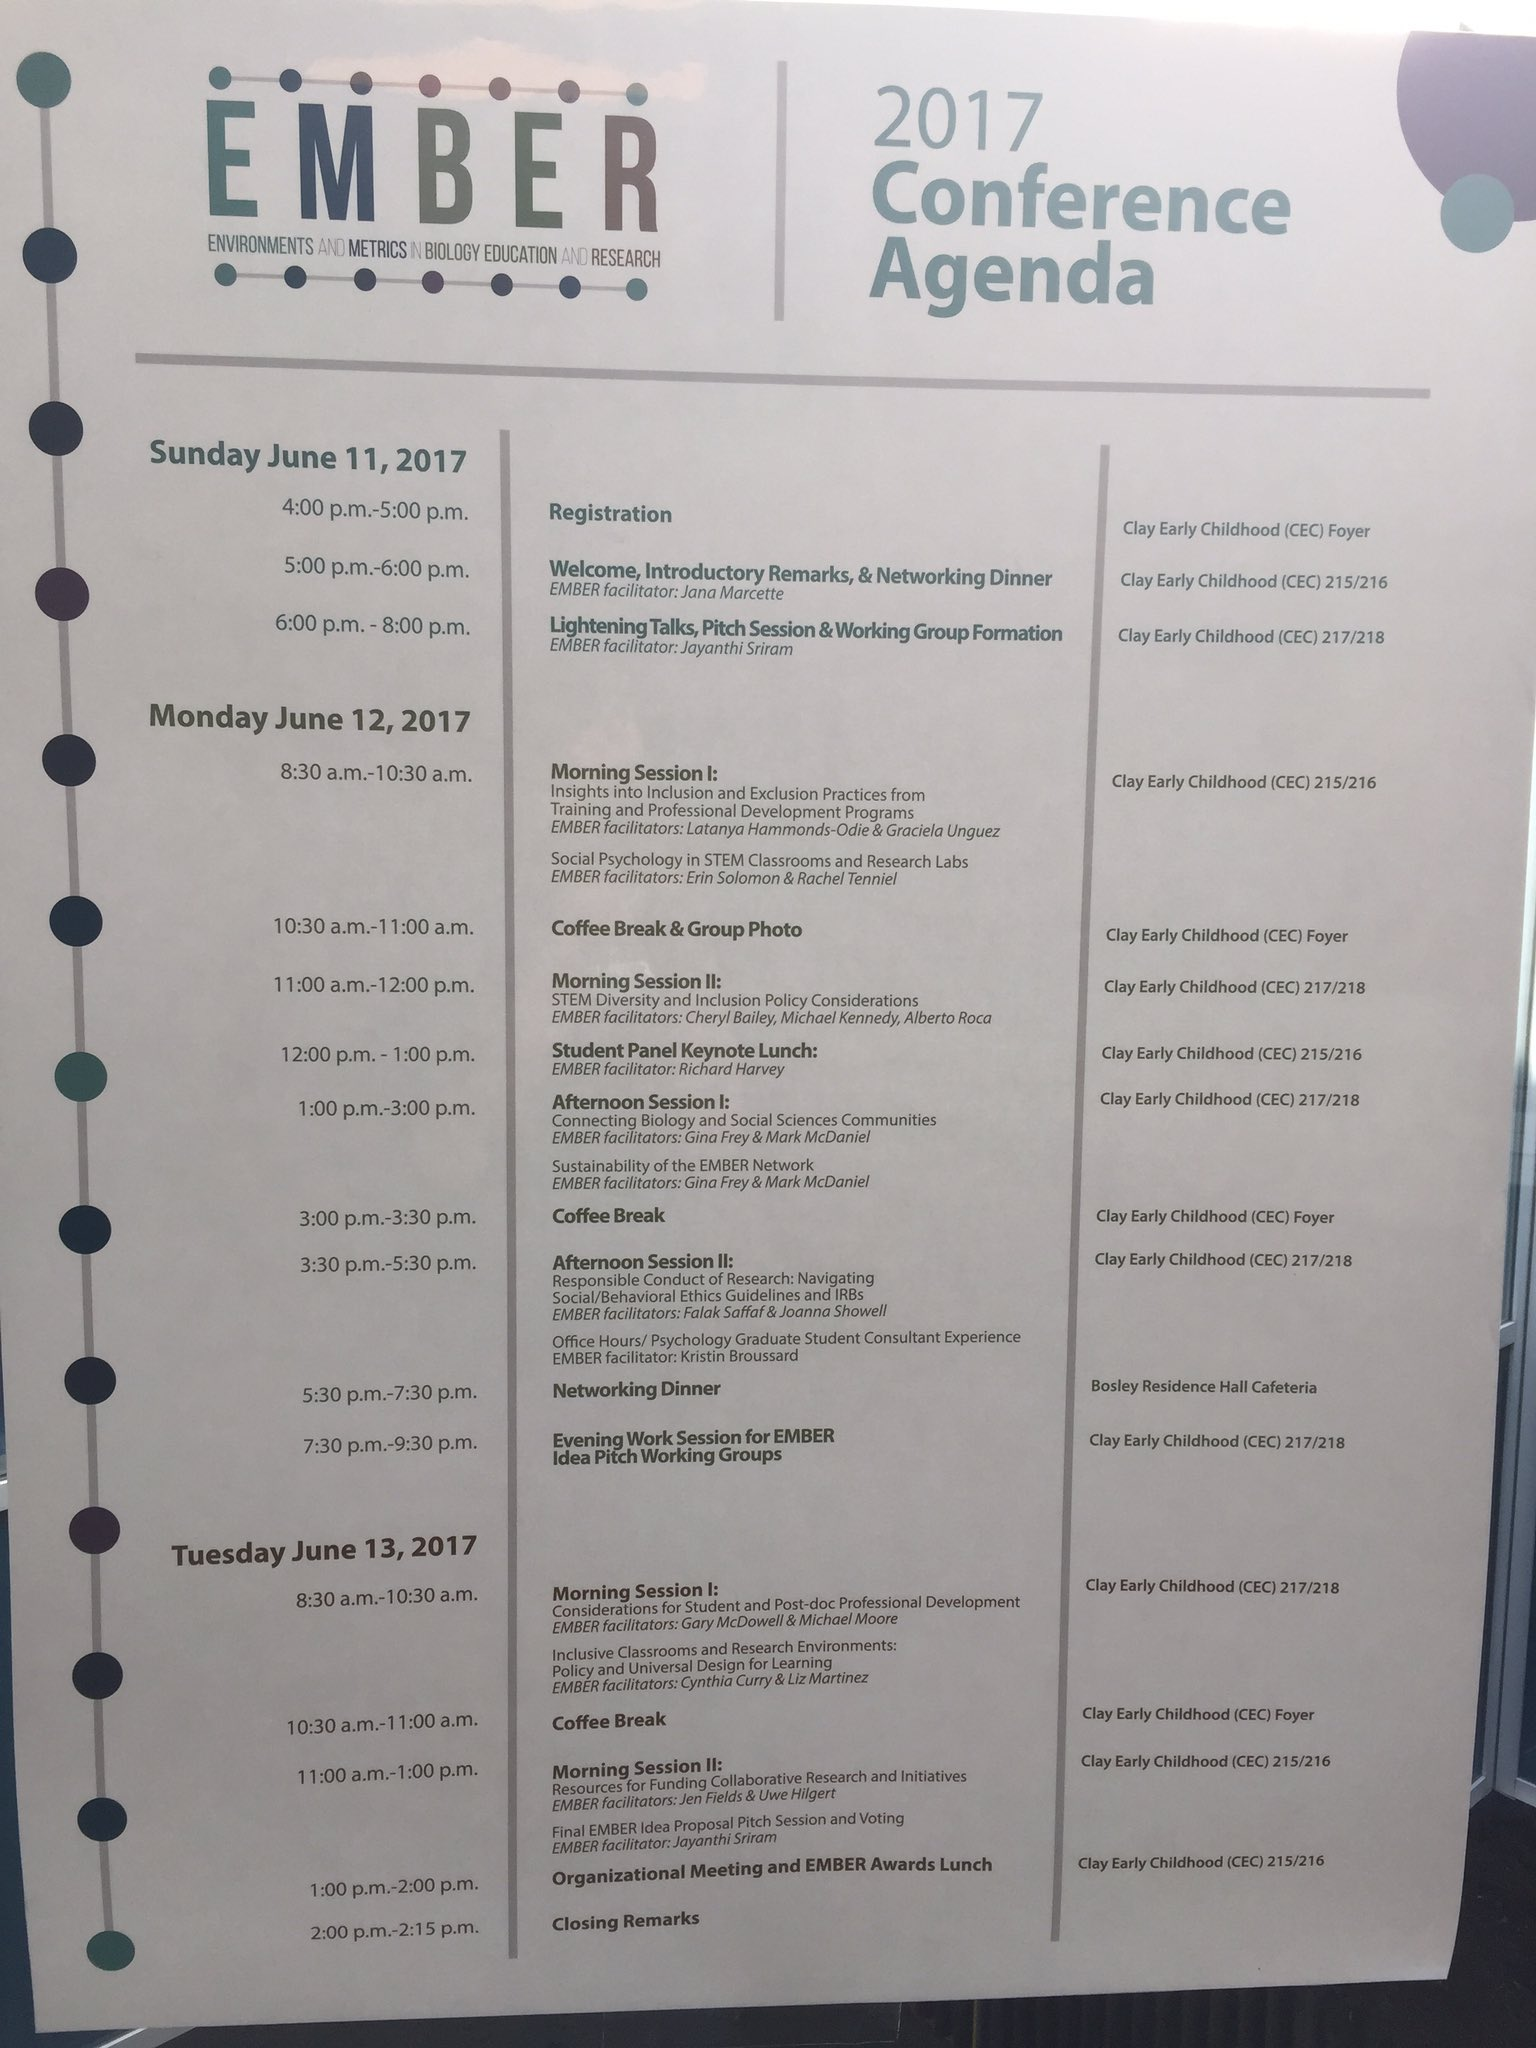 #EMBER2017 conference agenda https://t.co/ohMEGyW3Tl